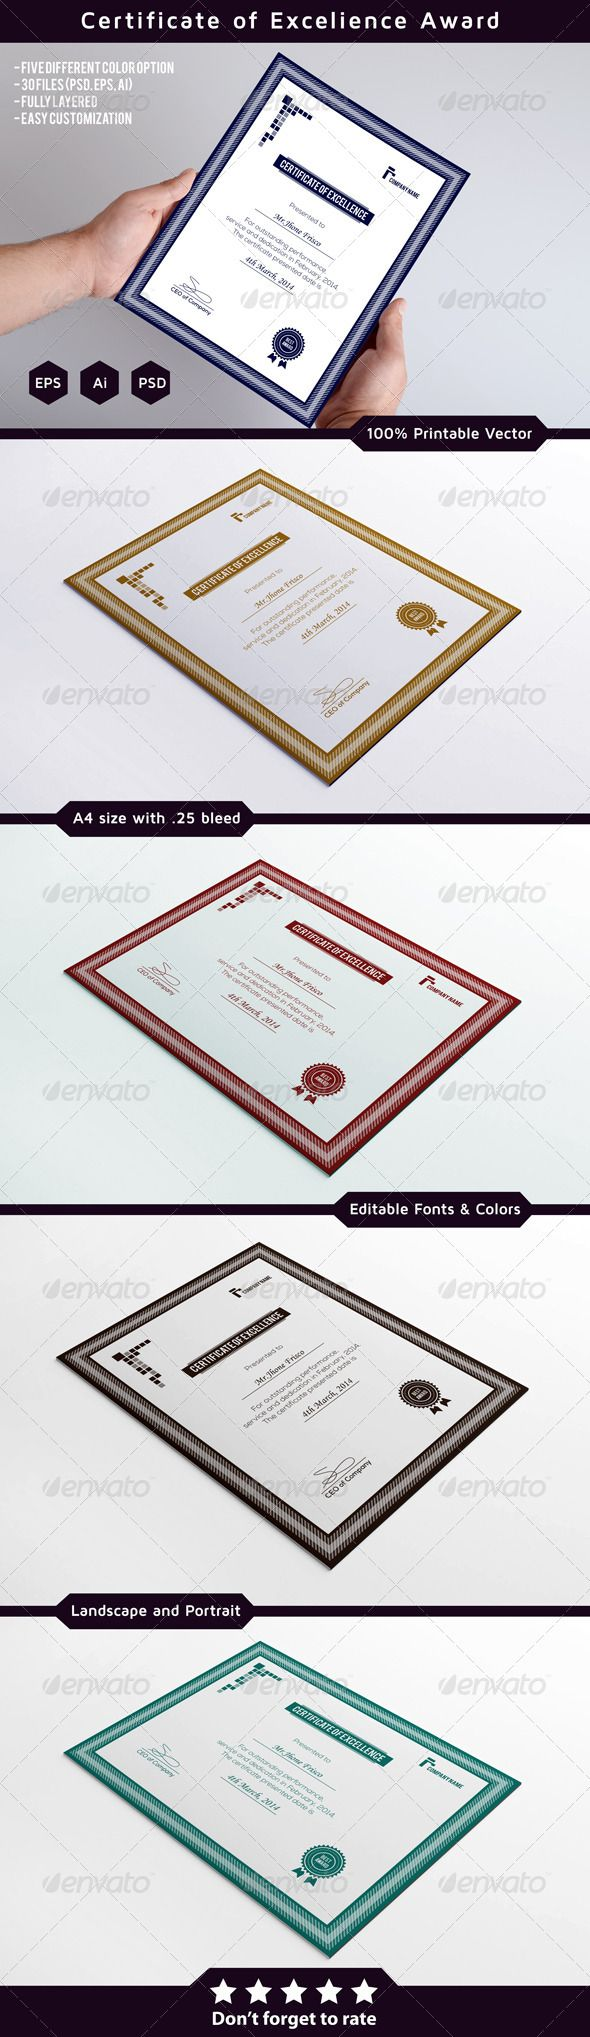 Certificates of Excellence: This is clean and simple Award Certificate template. its 100% printable and fully editable. its available in five color versions and three different file formats, with vertical and horizontal options. You can easily add your text and print.